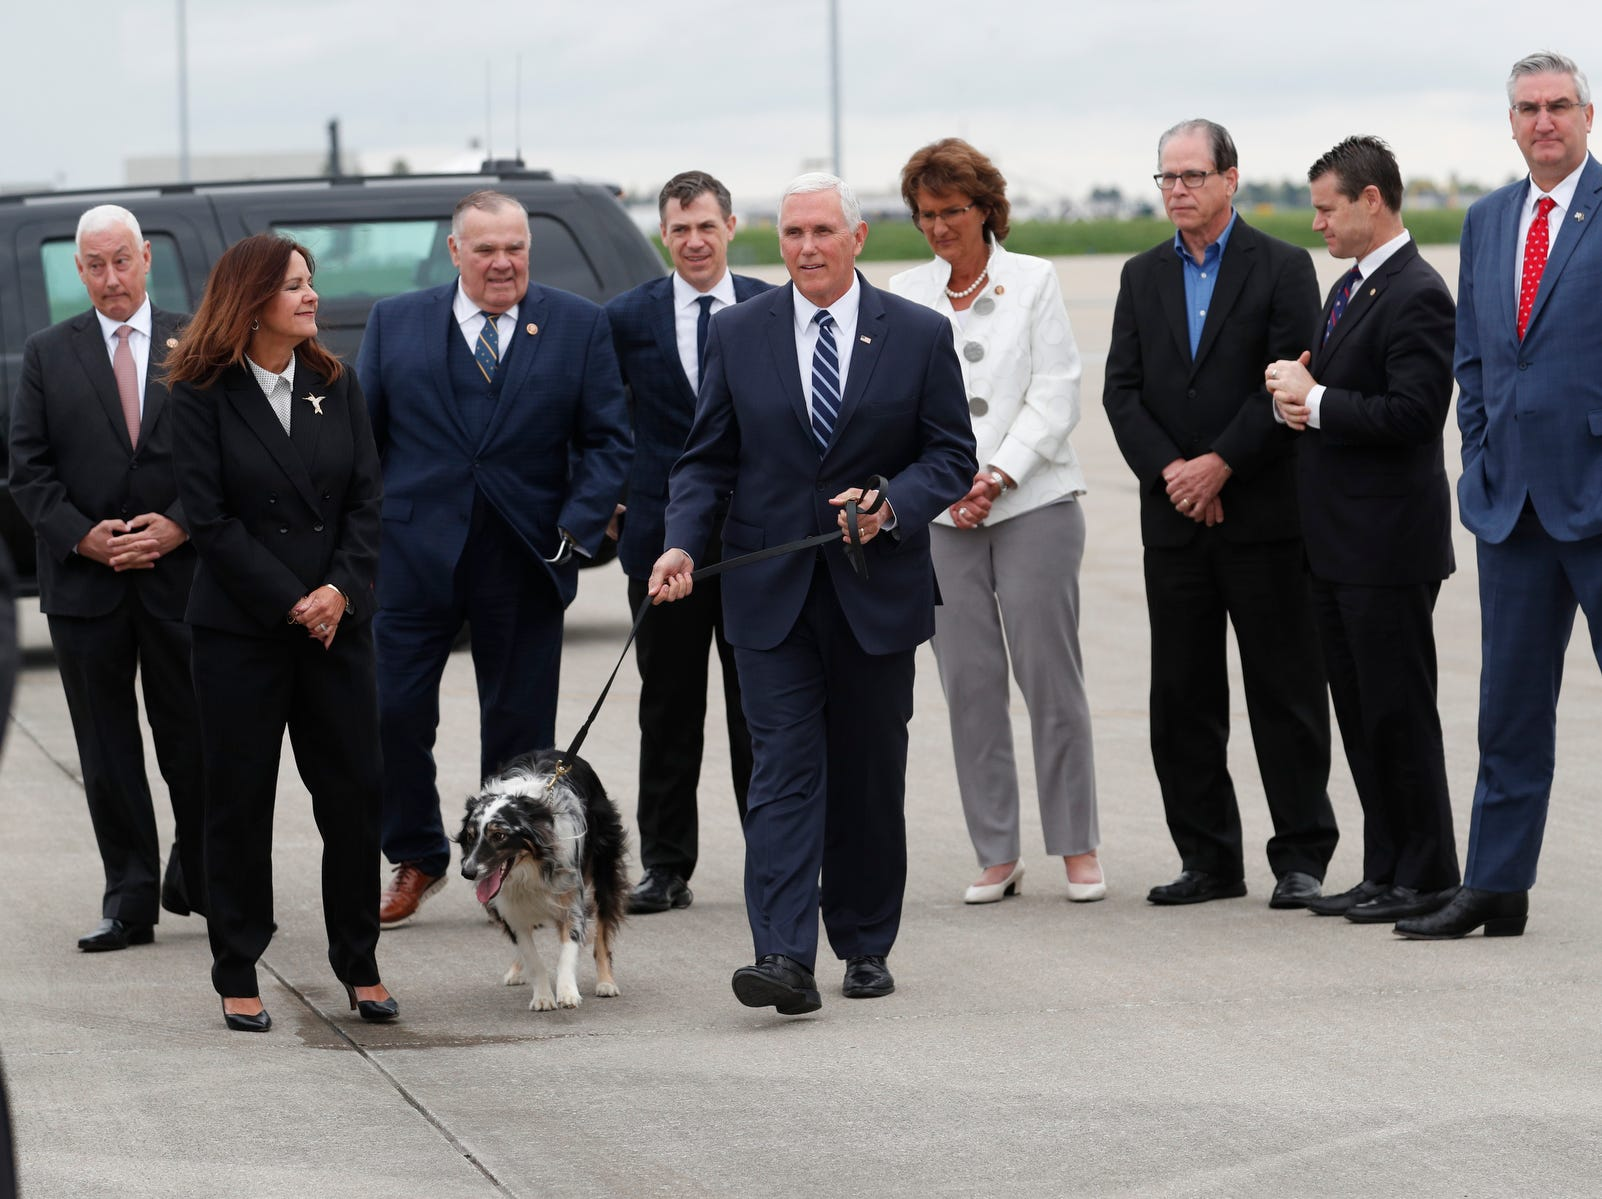 Vice President Mike Pence and his wife, Karen arrive in Indianapolis on April 26, 2019. Congressman Greg Pence, Congressmen Jim Baird, Jim Banks, Congresswoman Jackie Walorski, Senators Mike Braun and Todd Young and Gov. Eric Holcomb  greeted the couple at the Indianapolis International Airport. Pence will speak before the 2019 NRA Meeting and Exhibit at Lucas Oil Stadium. Their dog, Harley accompanied them on the trip.